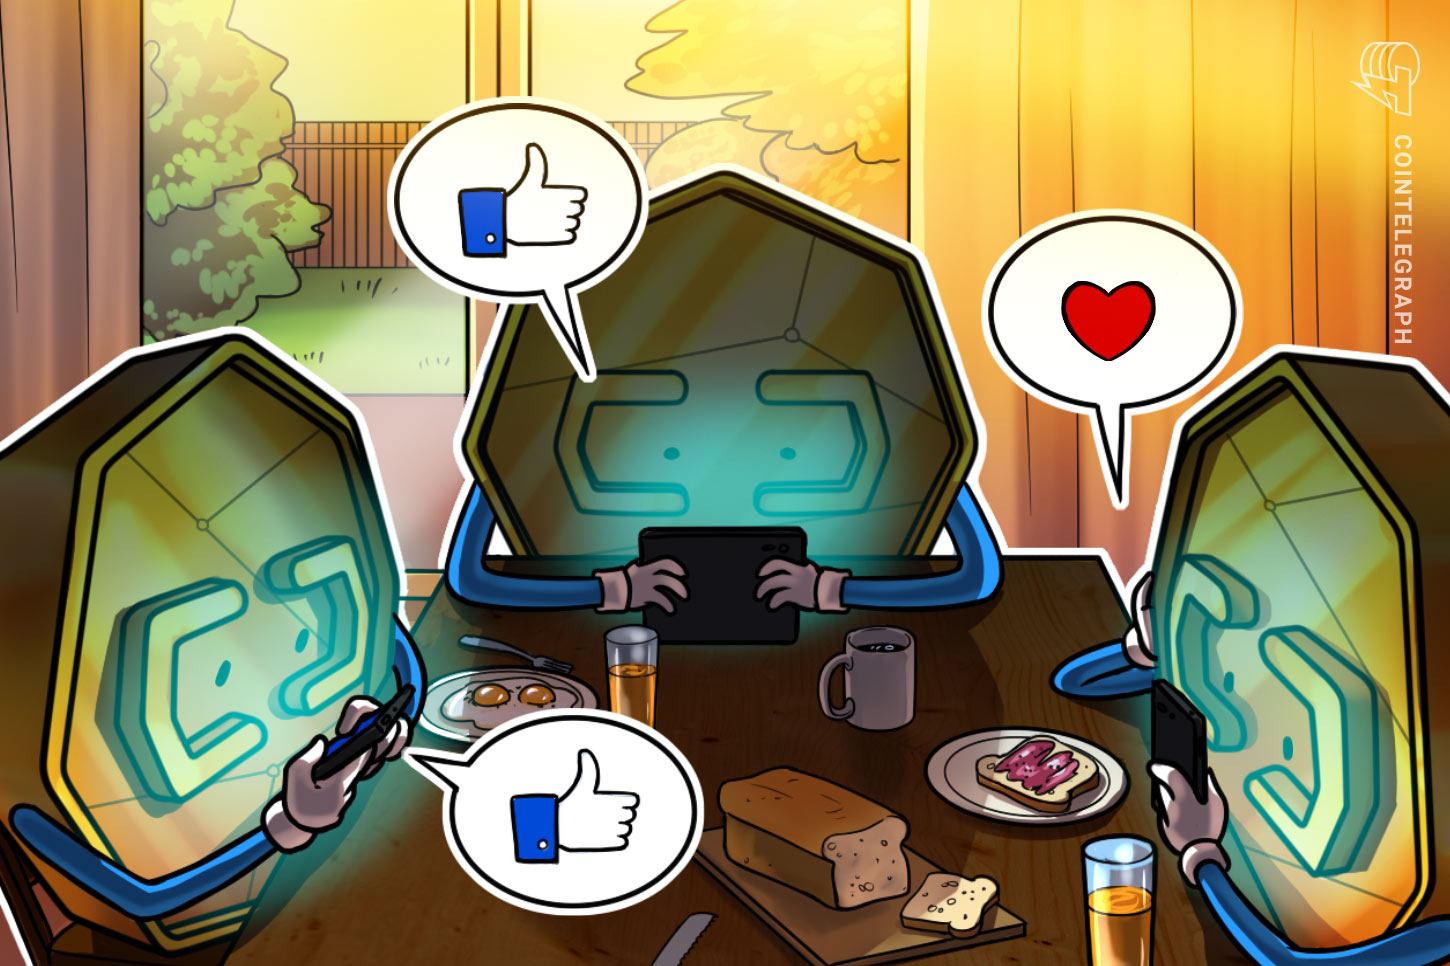 EOSIO-Based Social Media Platform Voice Briefly Goes Live Ahead of Schedule - Cointelegraph